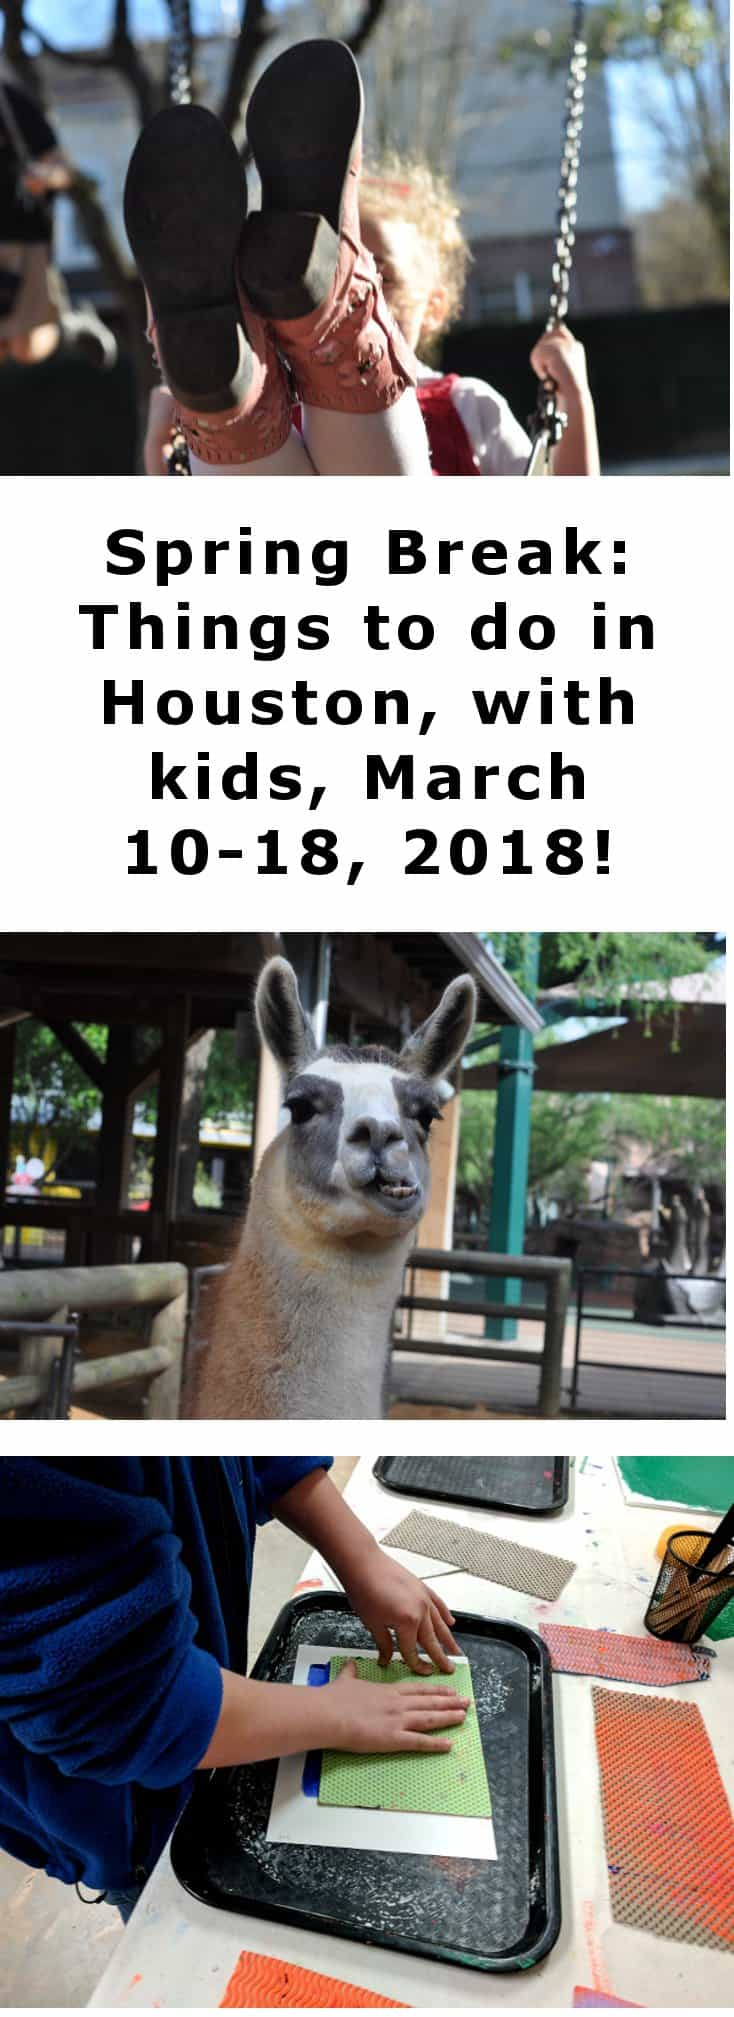 Spring Break 2018: Things to do in Houston, with kids, March 10 18